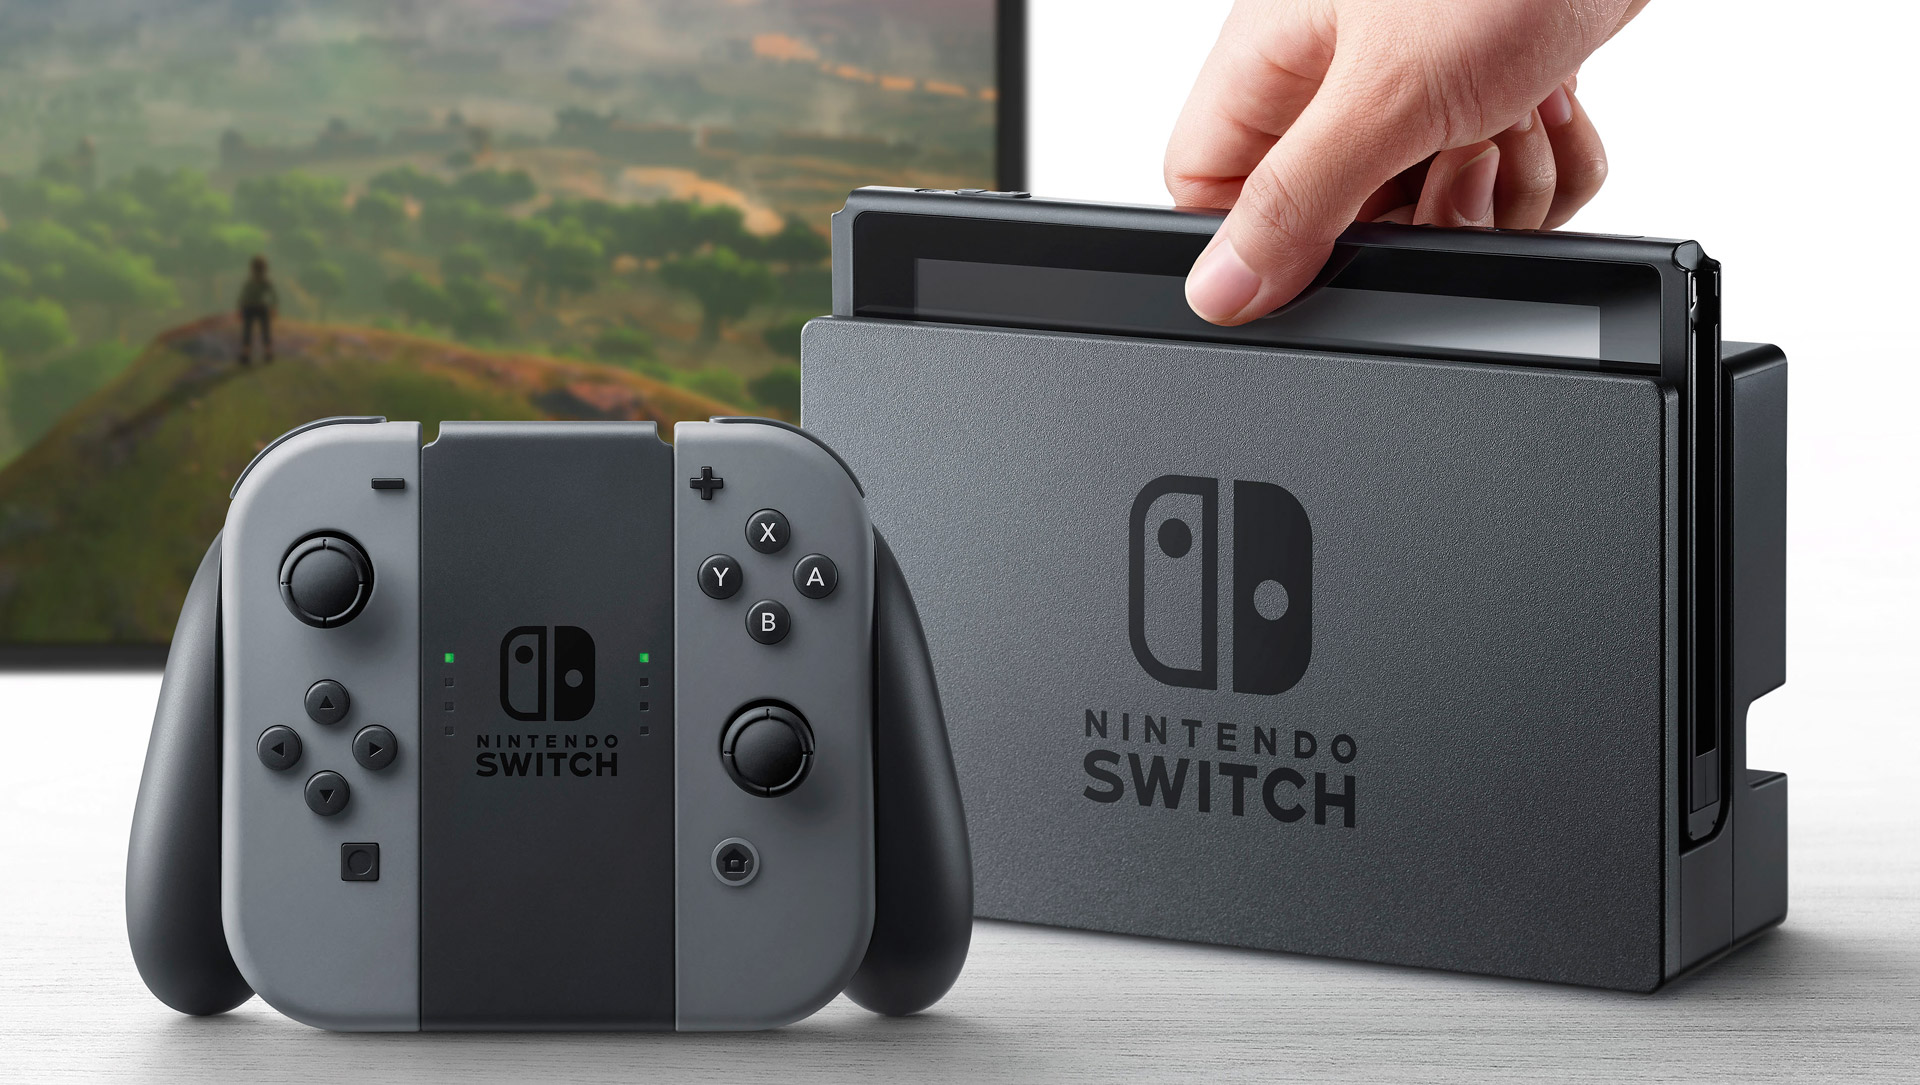 Turn your Android phone into a DIY Nintendo Switch